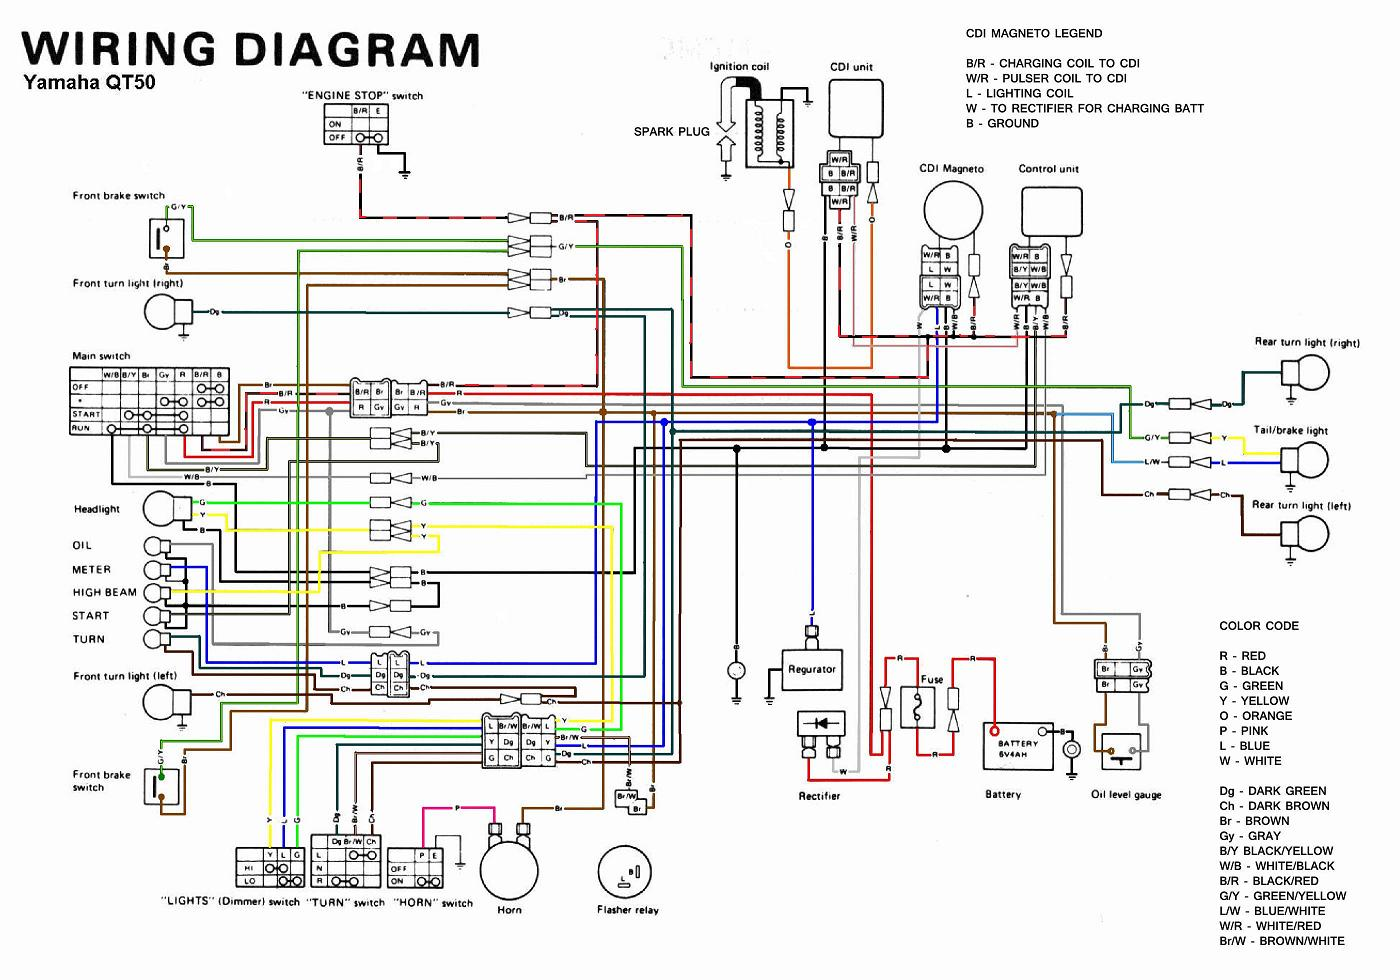 yamaha qt50 wiring diagram yamaha qt50 luvin and other nopeds yamaha qt50 wiring diagram